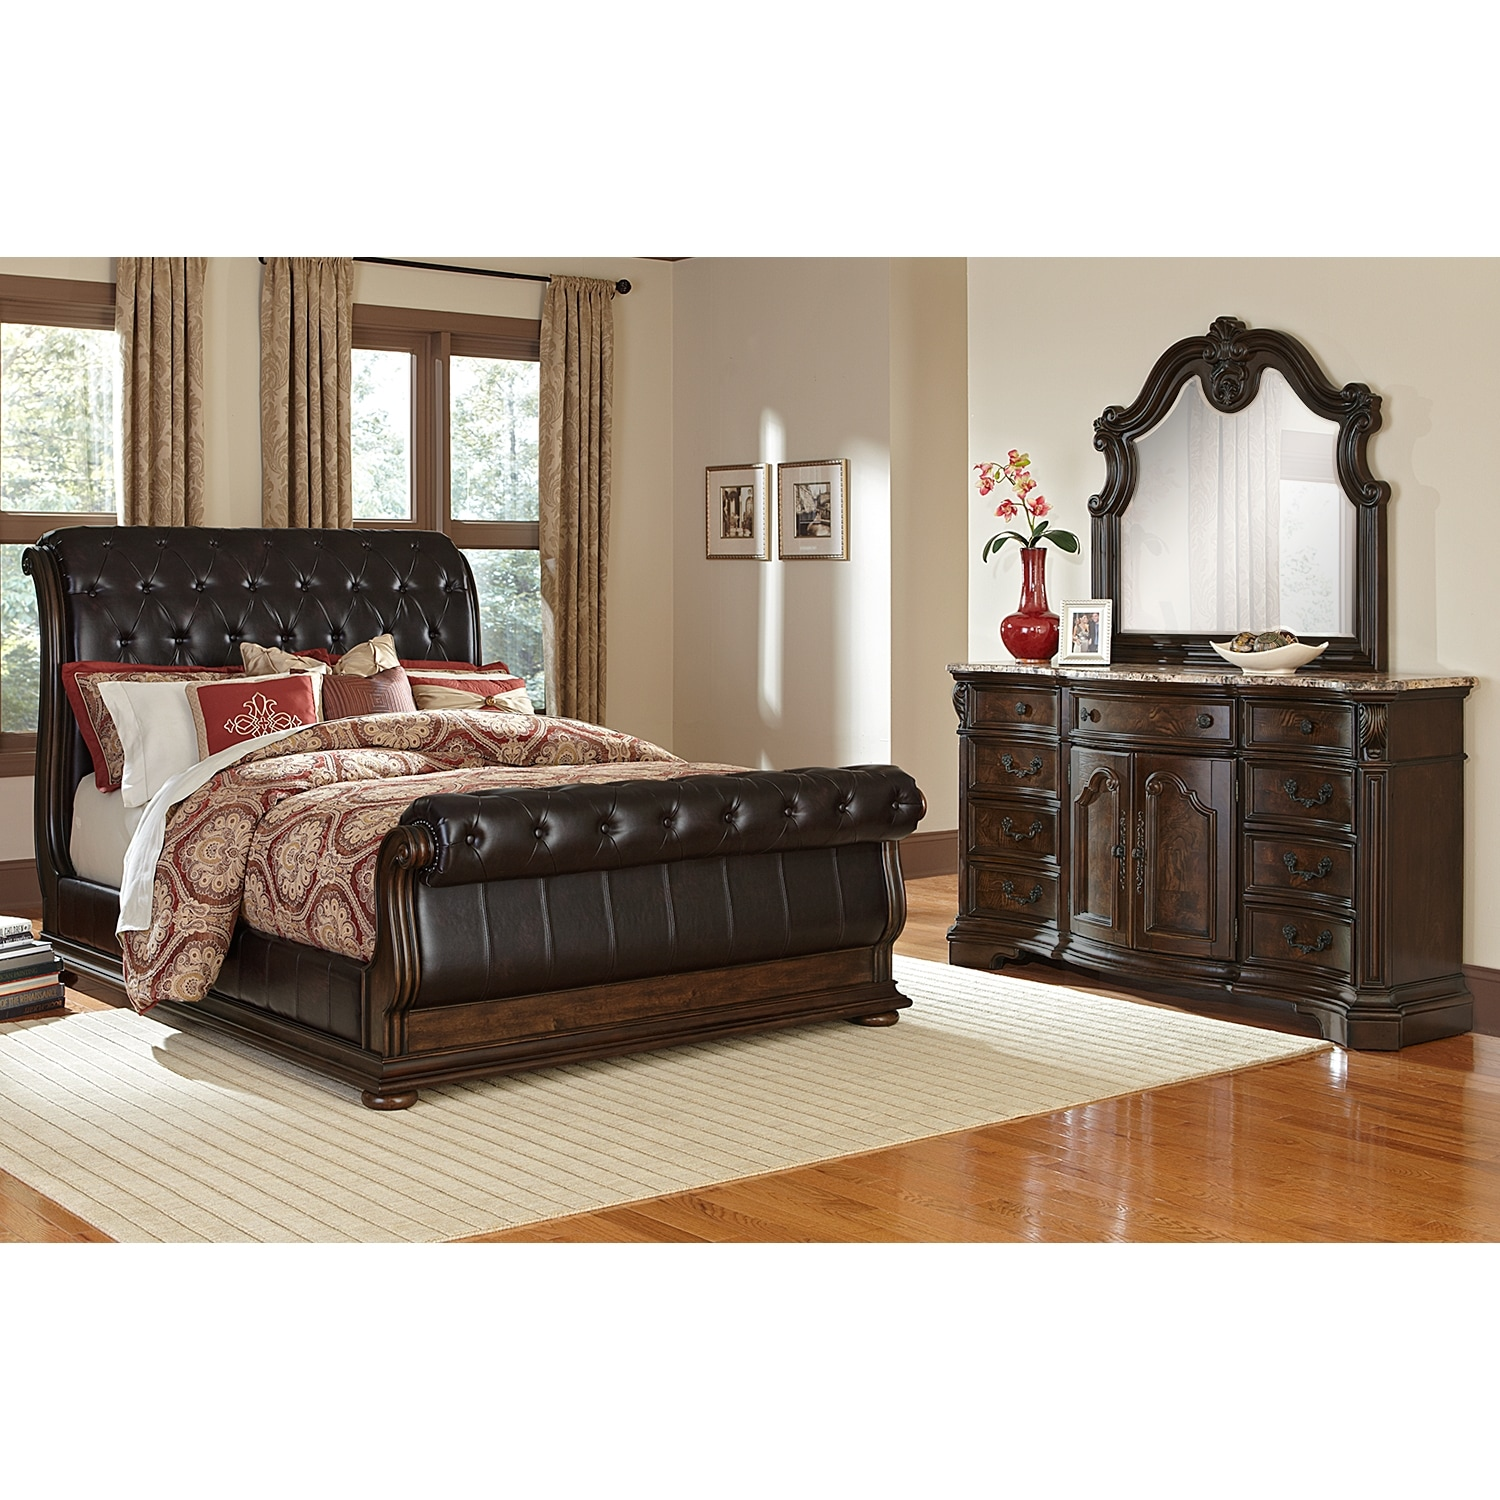 Bedroom Furniture: Monticello 5-Piece Queen Sleigh Bedroom Set